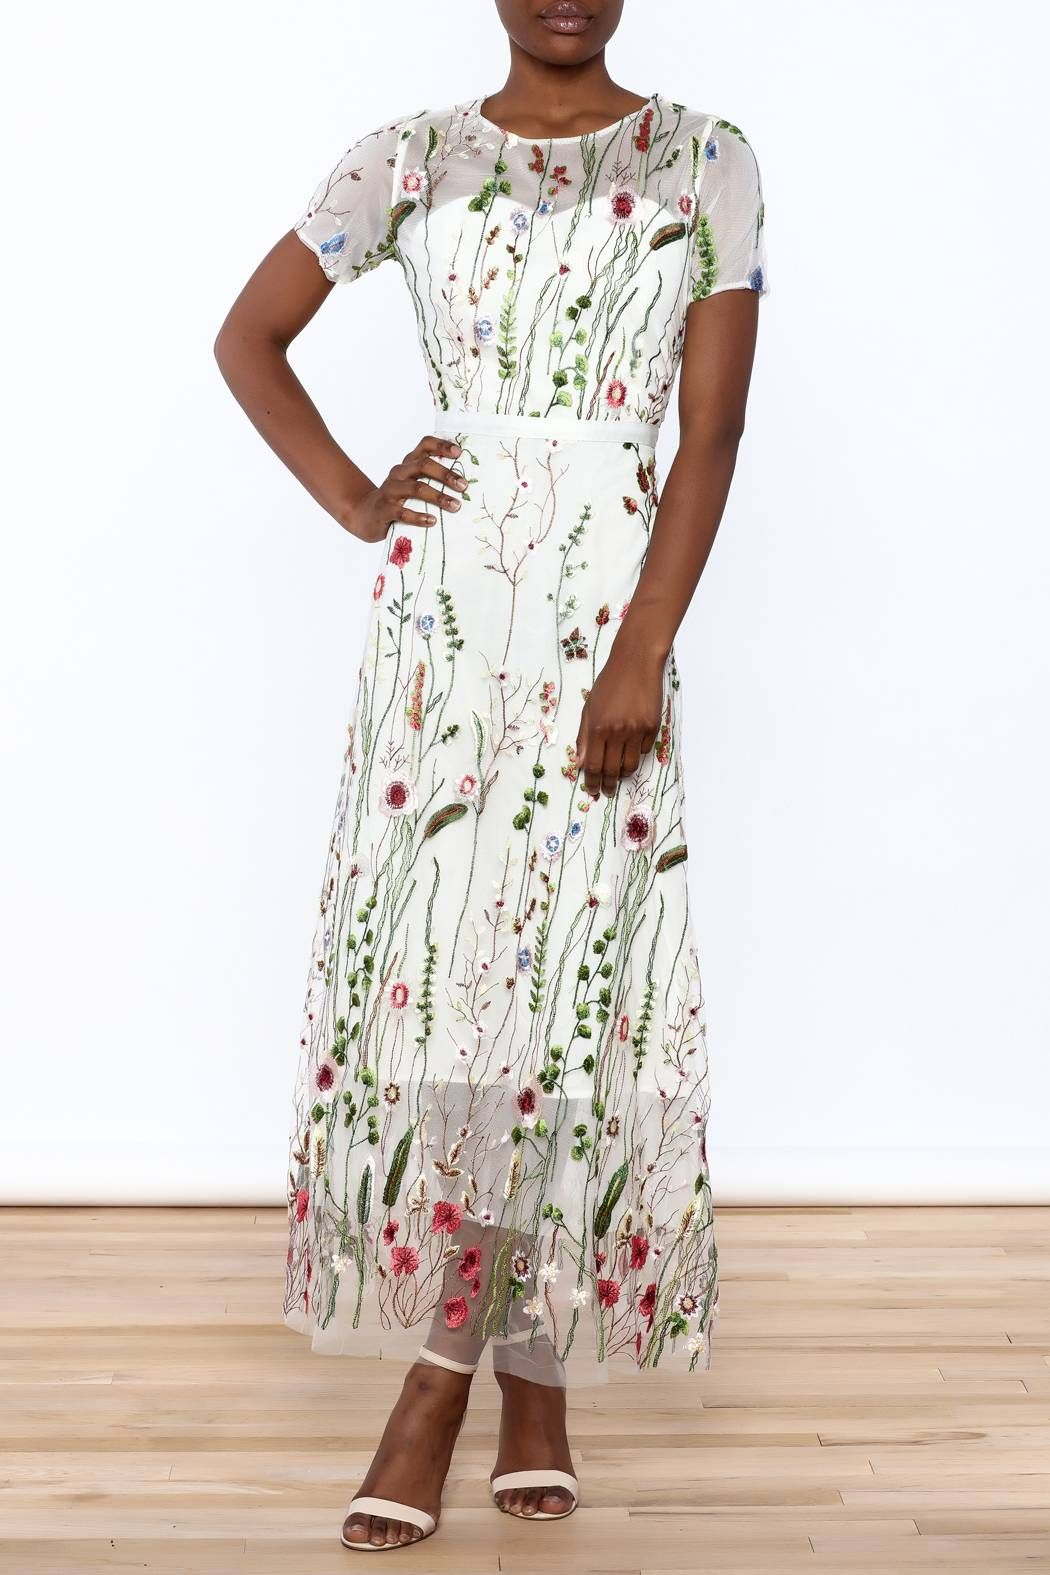 Mesh Embroidered Dress Embroidered Mesh Dress Short Sleeve Maxi Dresses Summer Maxi Dress Floral